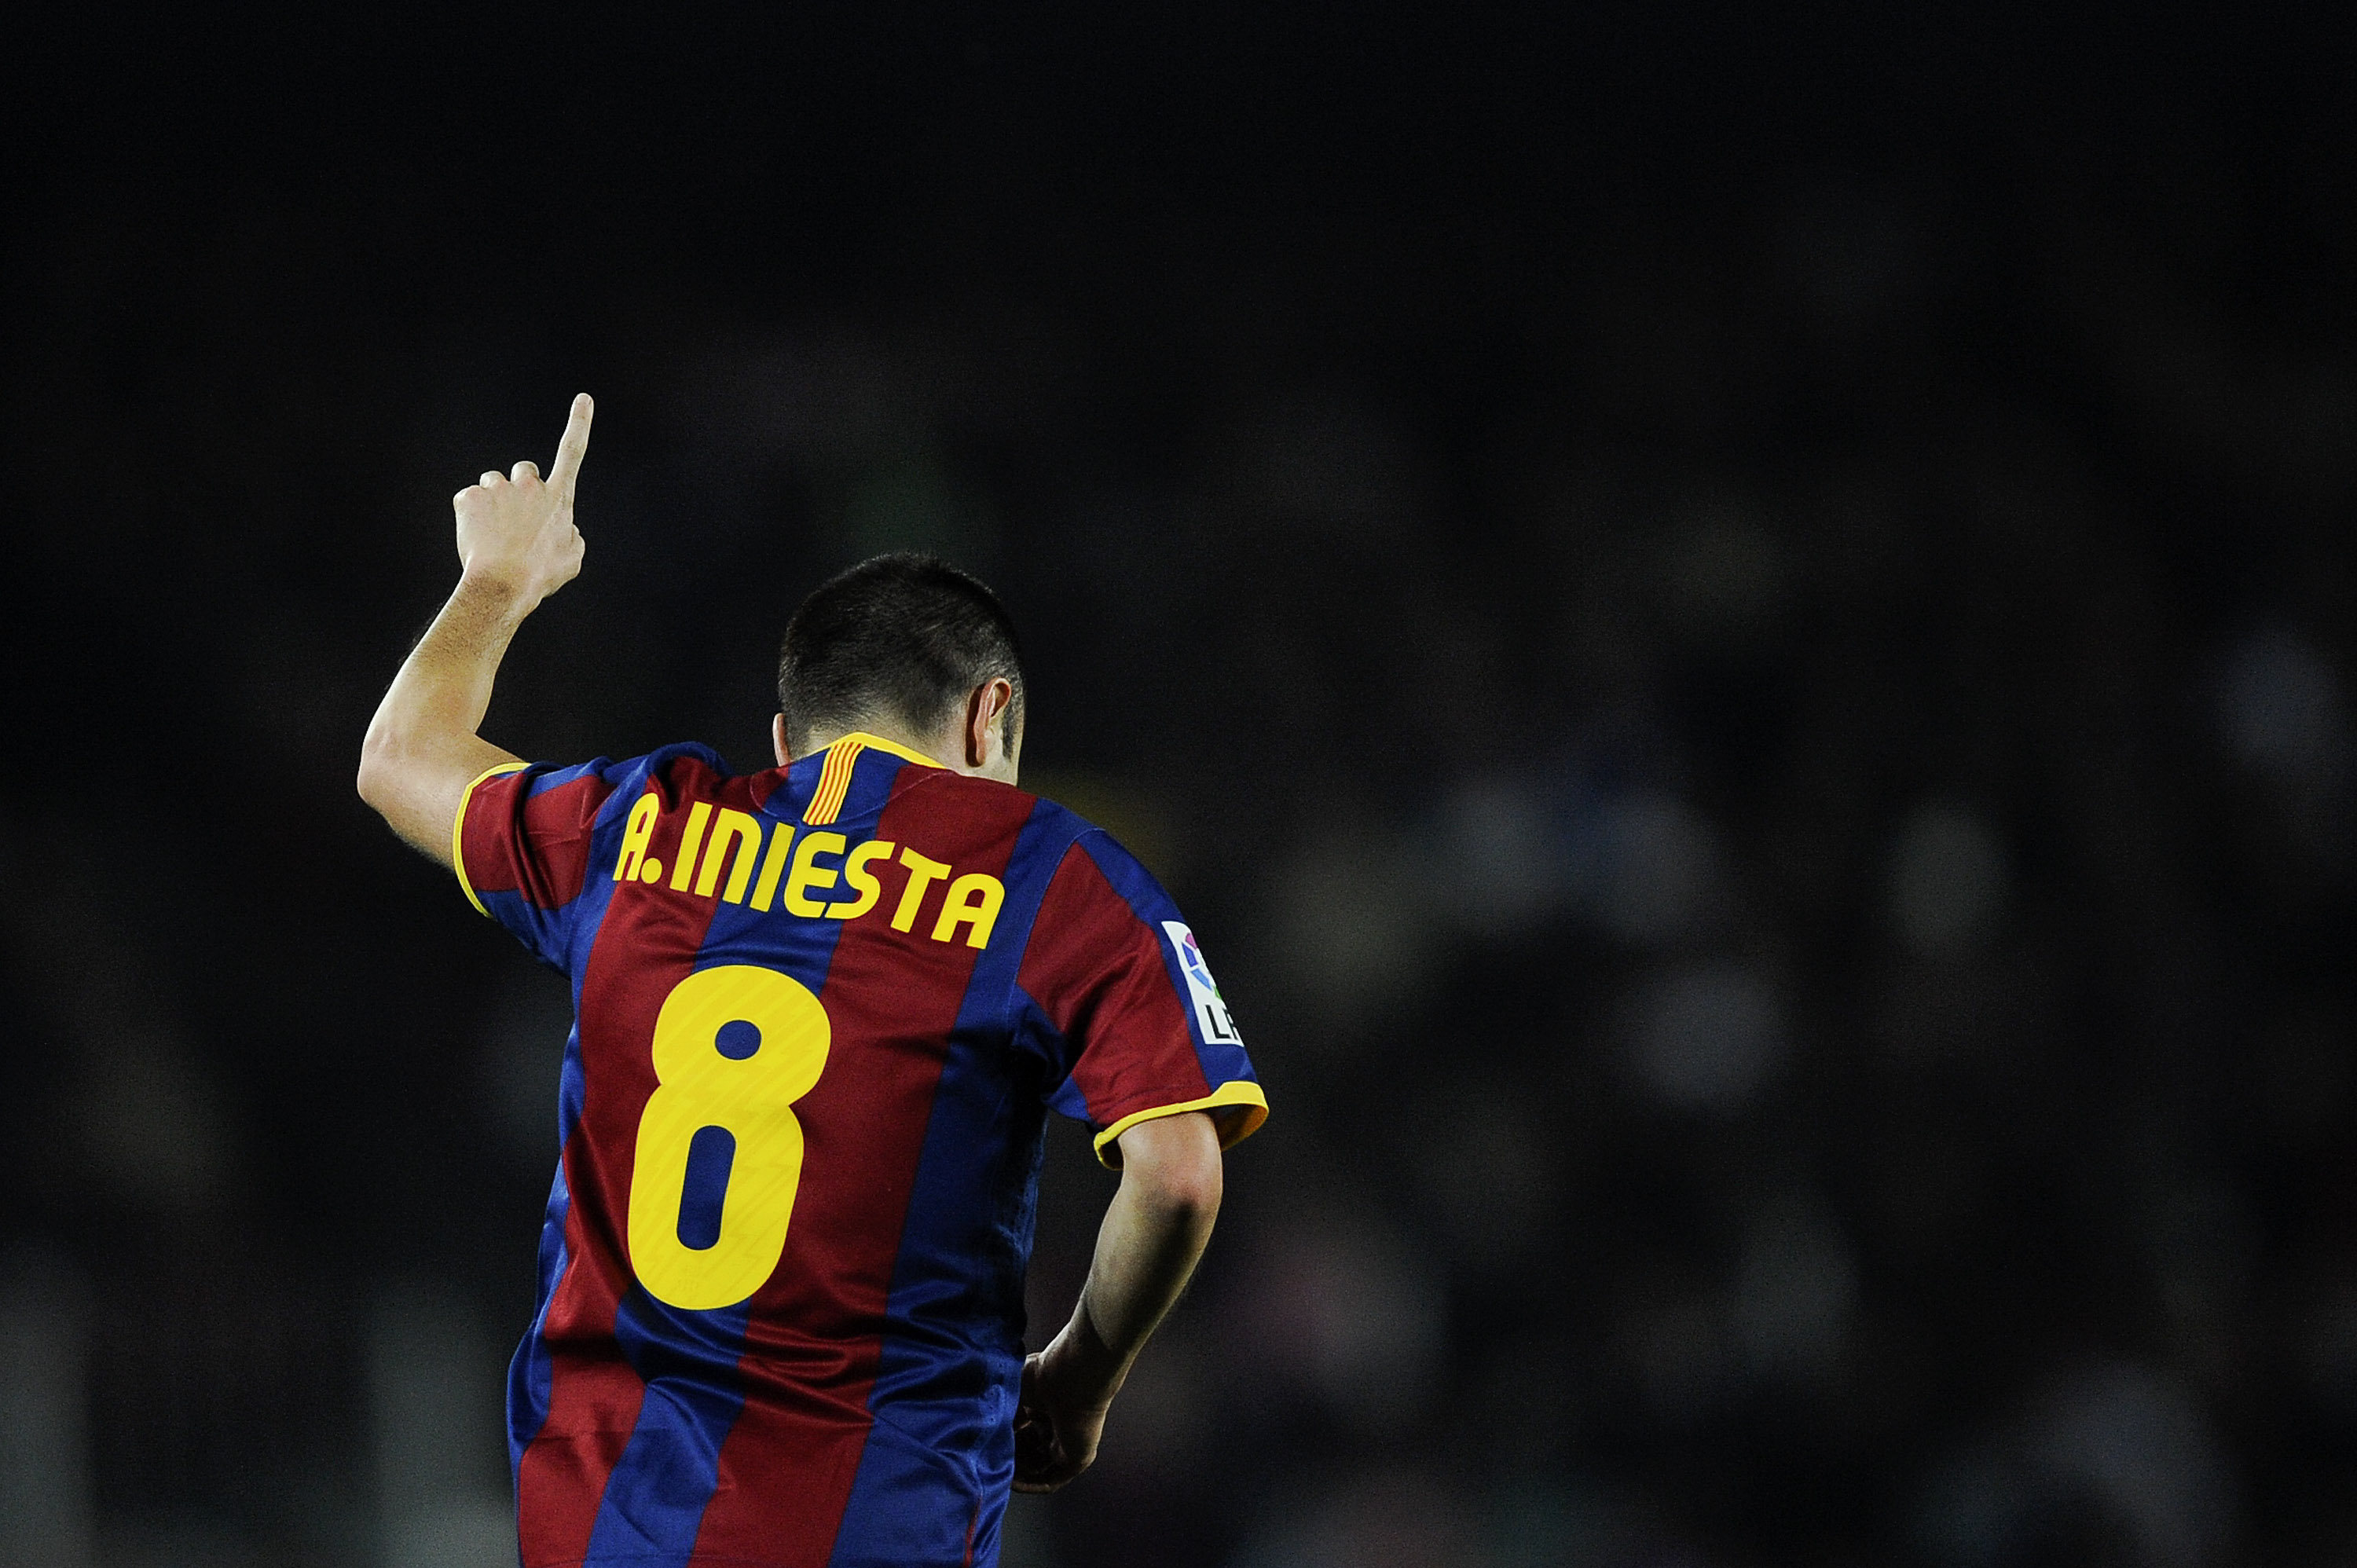 BARCELONA, SPAIN - DECEMBER 12:  Andres Iniesta of Barcelona celebrates after scoring his goal during the La Liga match between Barcelona and Real Sociedad at Camp Nou Stadium on December 12, 2010 in Barcelona, Spain. Barcelona won 5-0.  (Photo by David R